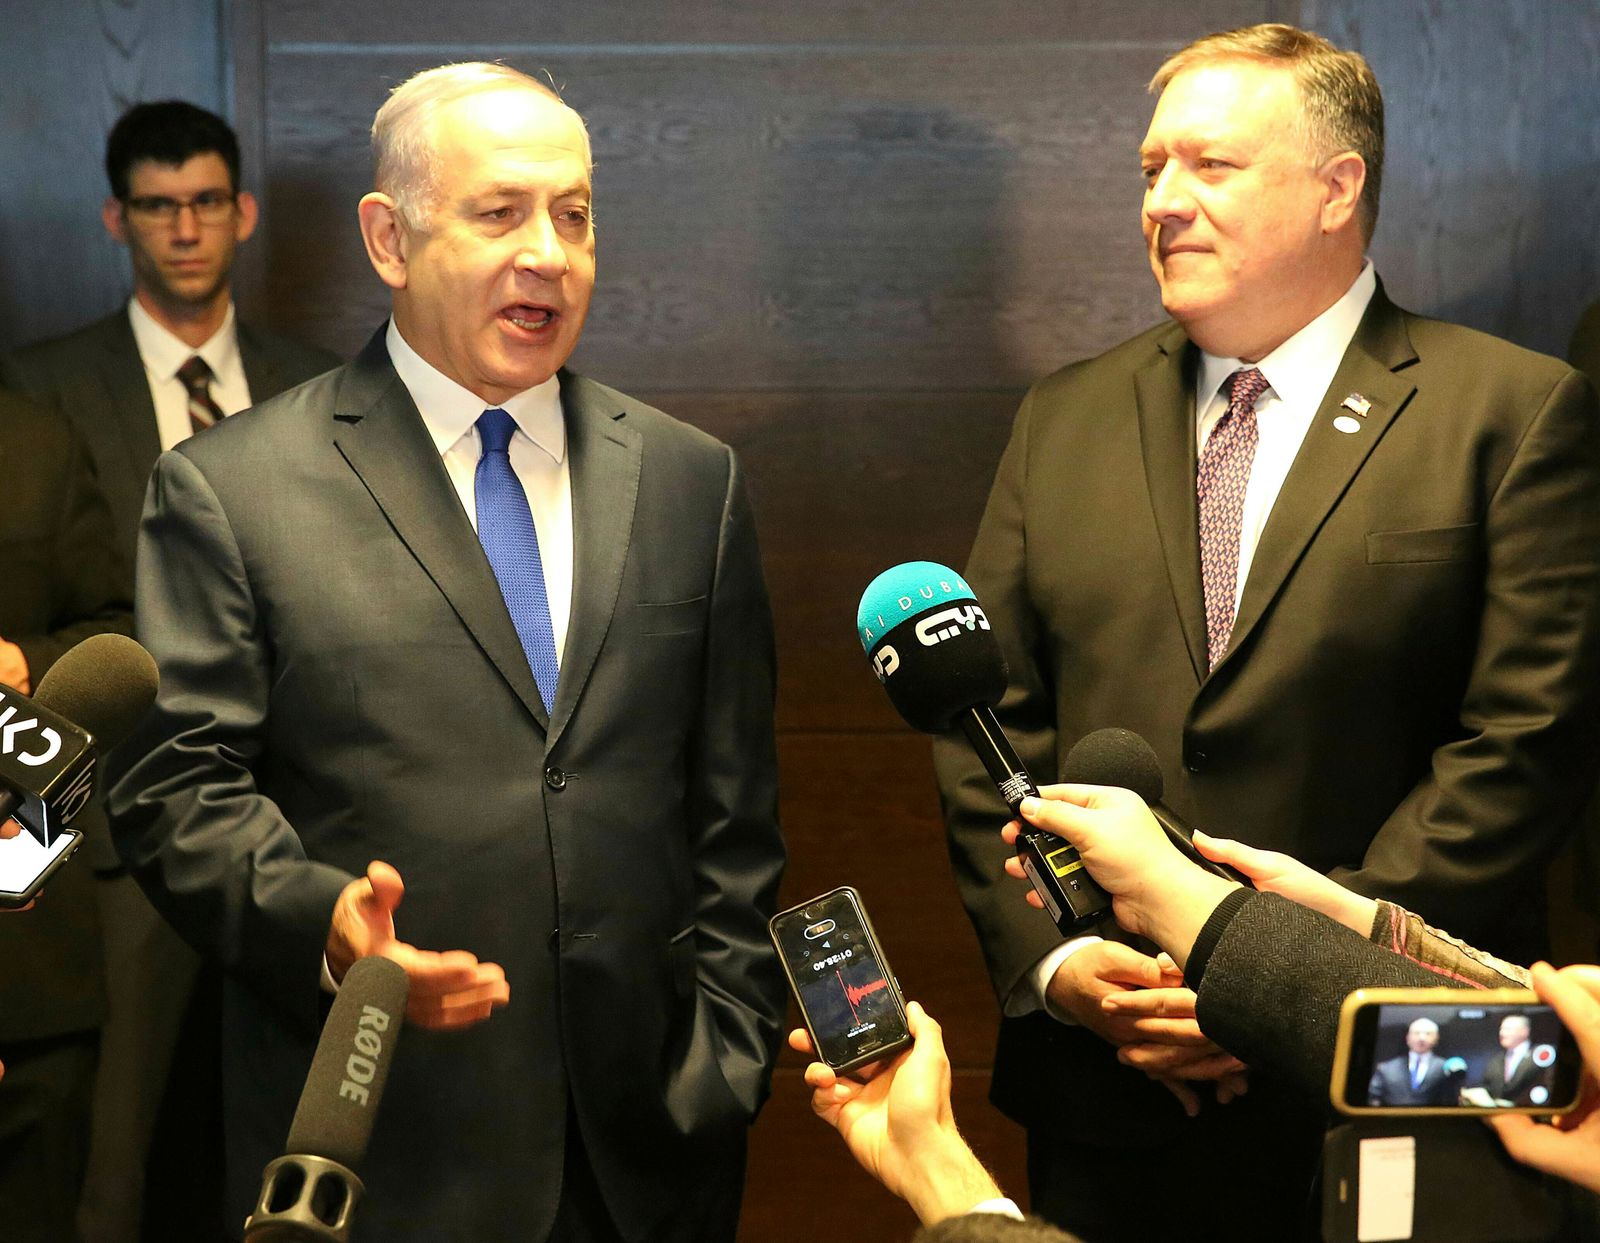 Israeli Prime Minister Benjamin Netanyahu, left, and US Secretary of State Mike Pompeo, right, talk to the press on the sidelines of a session at the conference on Peace and Security in the Middle East in Warsaw, Poland, Thursday, Feb. 14, 2019. (AP Photo/Czarek Sokolowski)